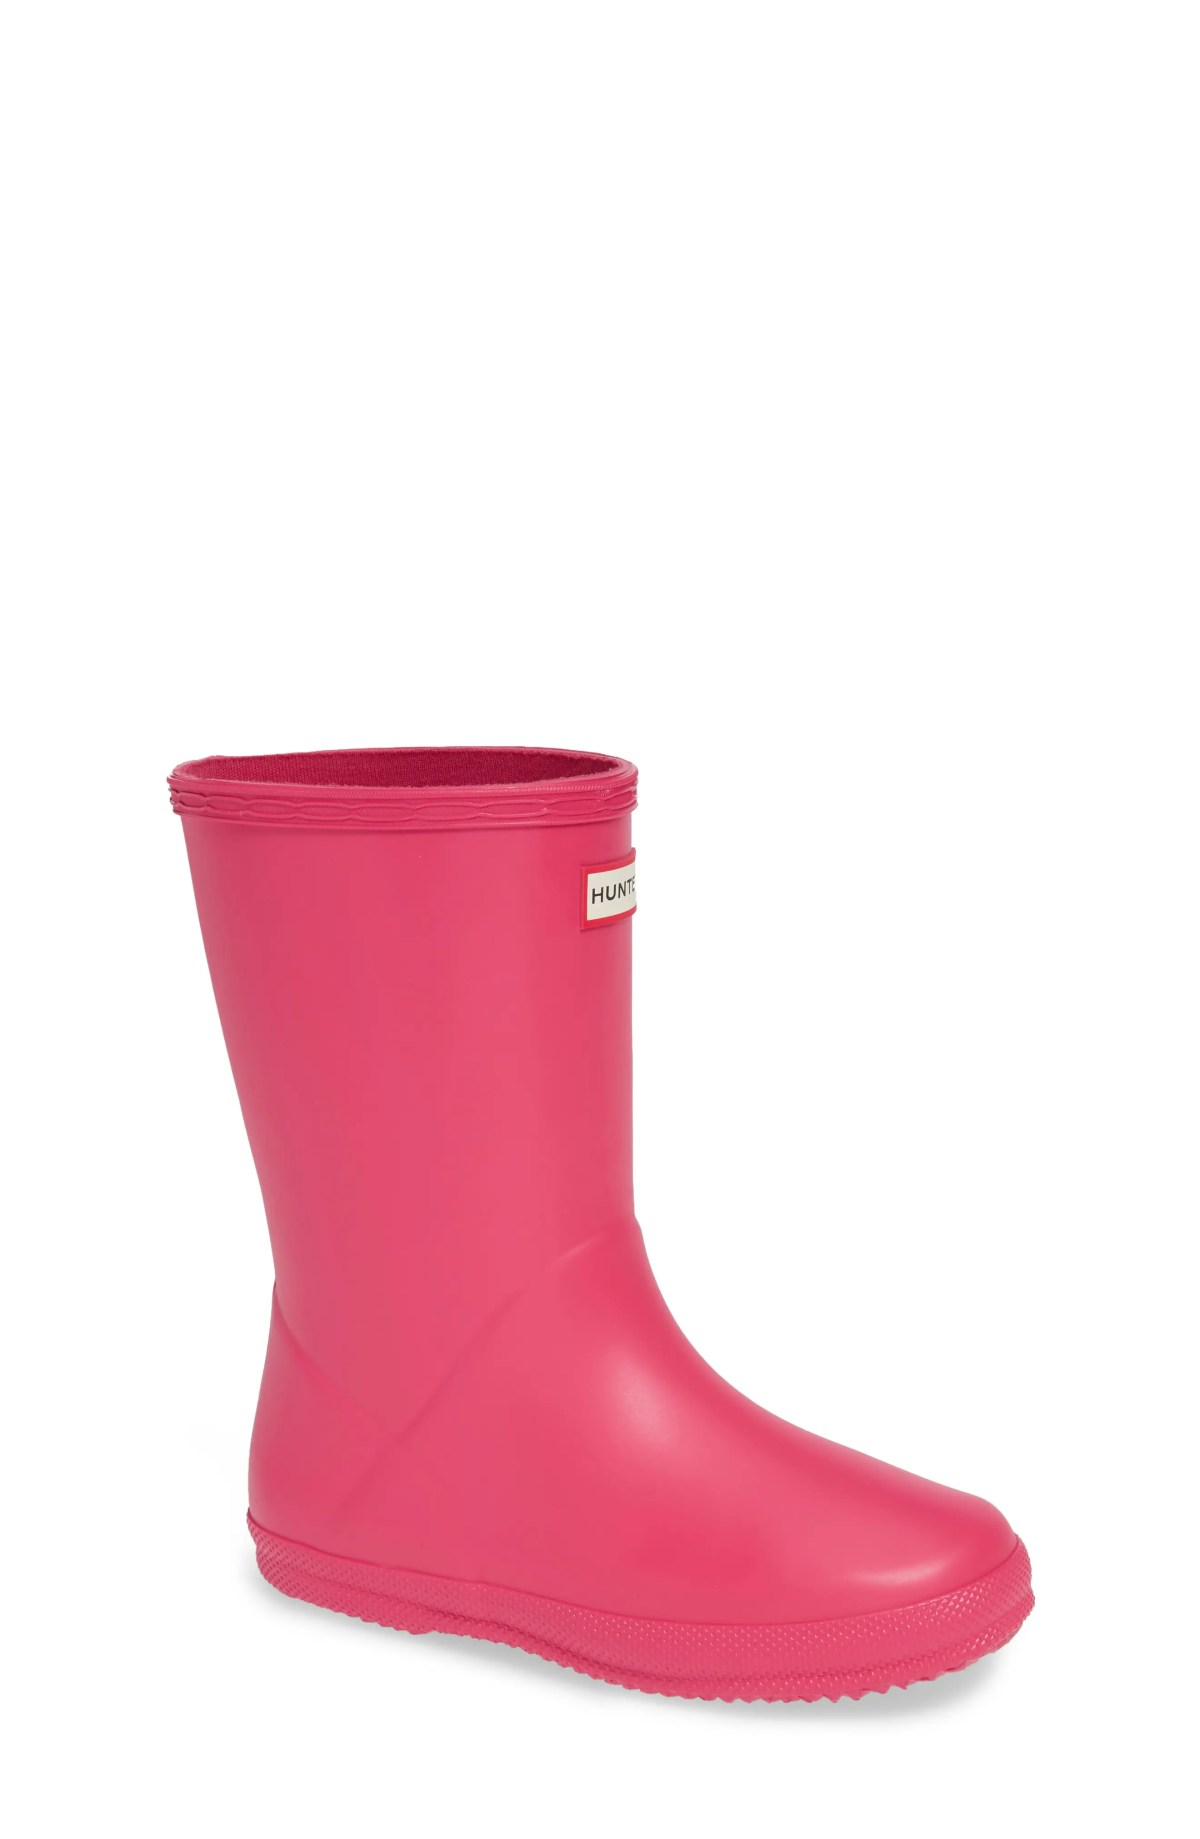 HUNTER First Classic Waterproof Rain Boot, Main, color, BRIGHT PINK